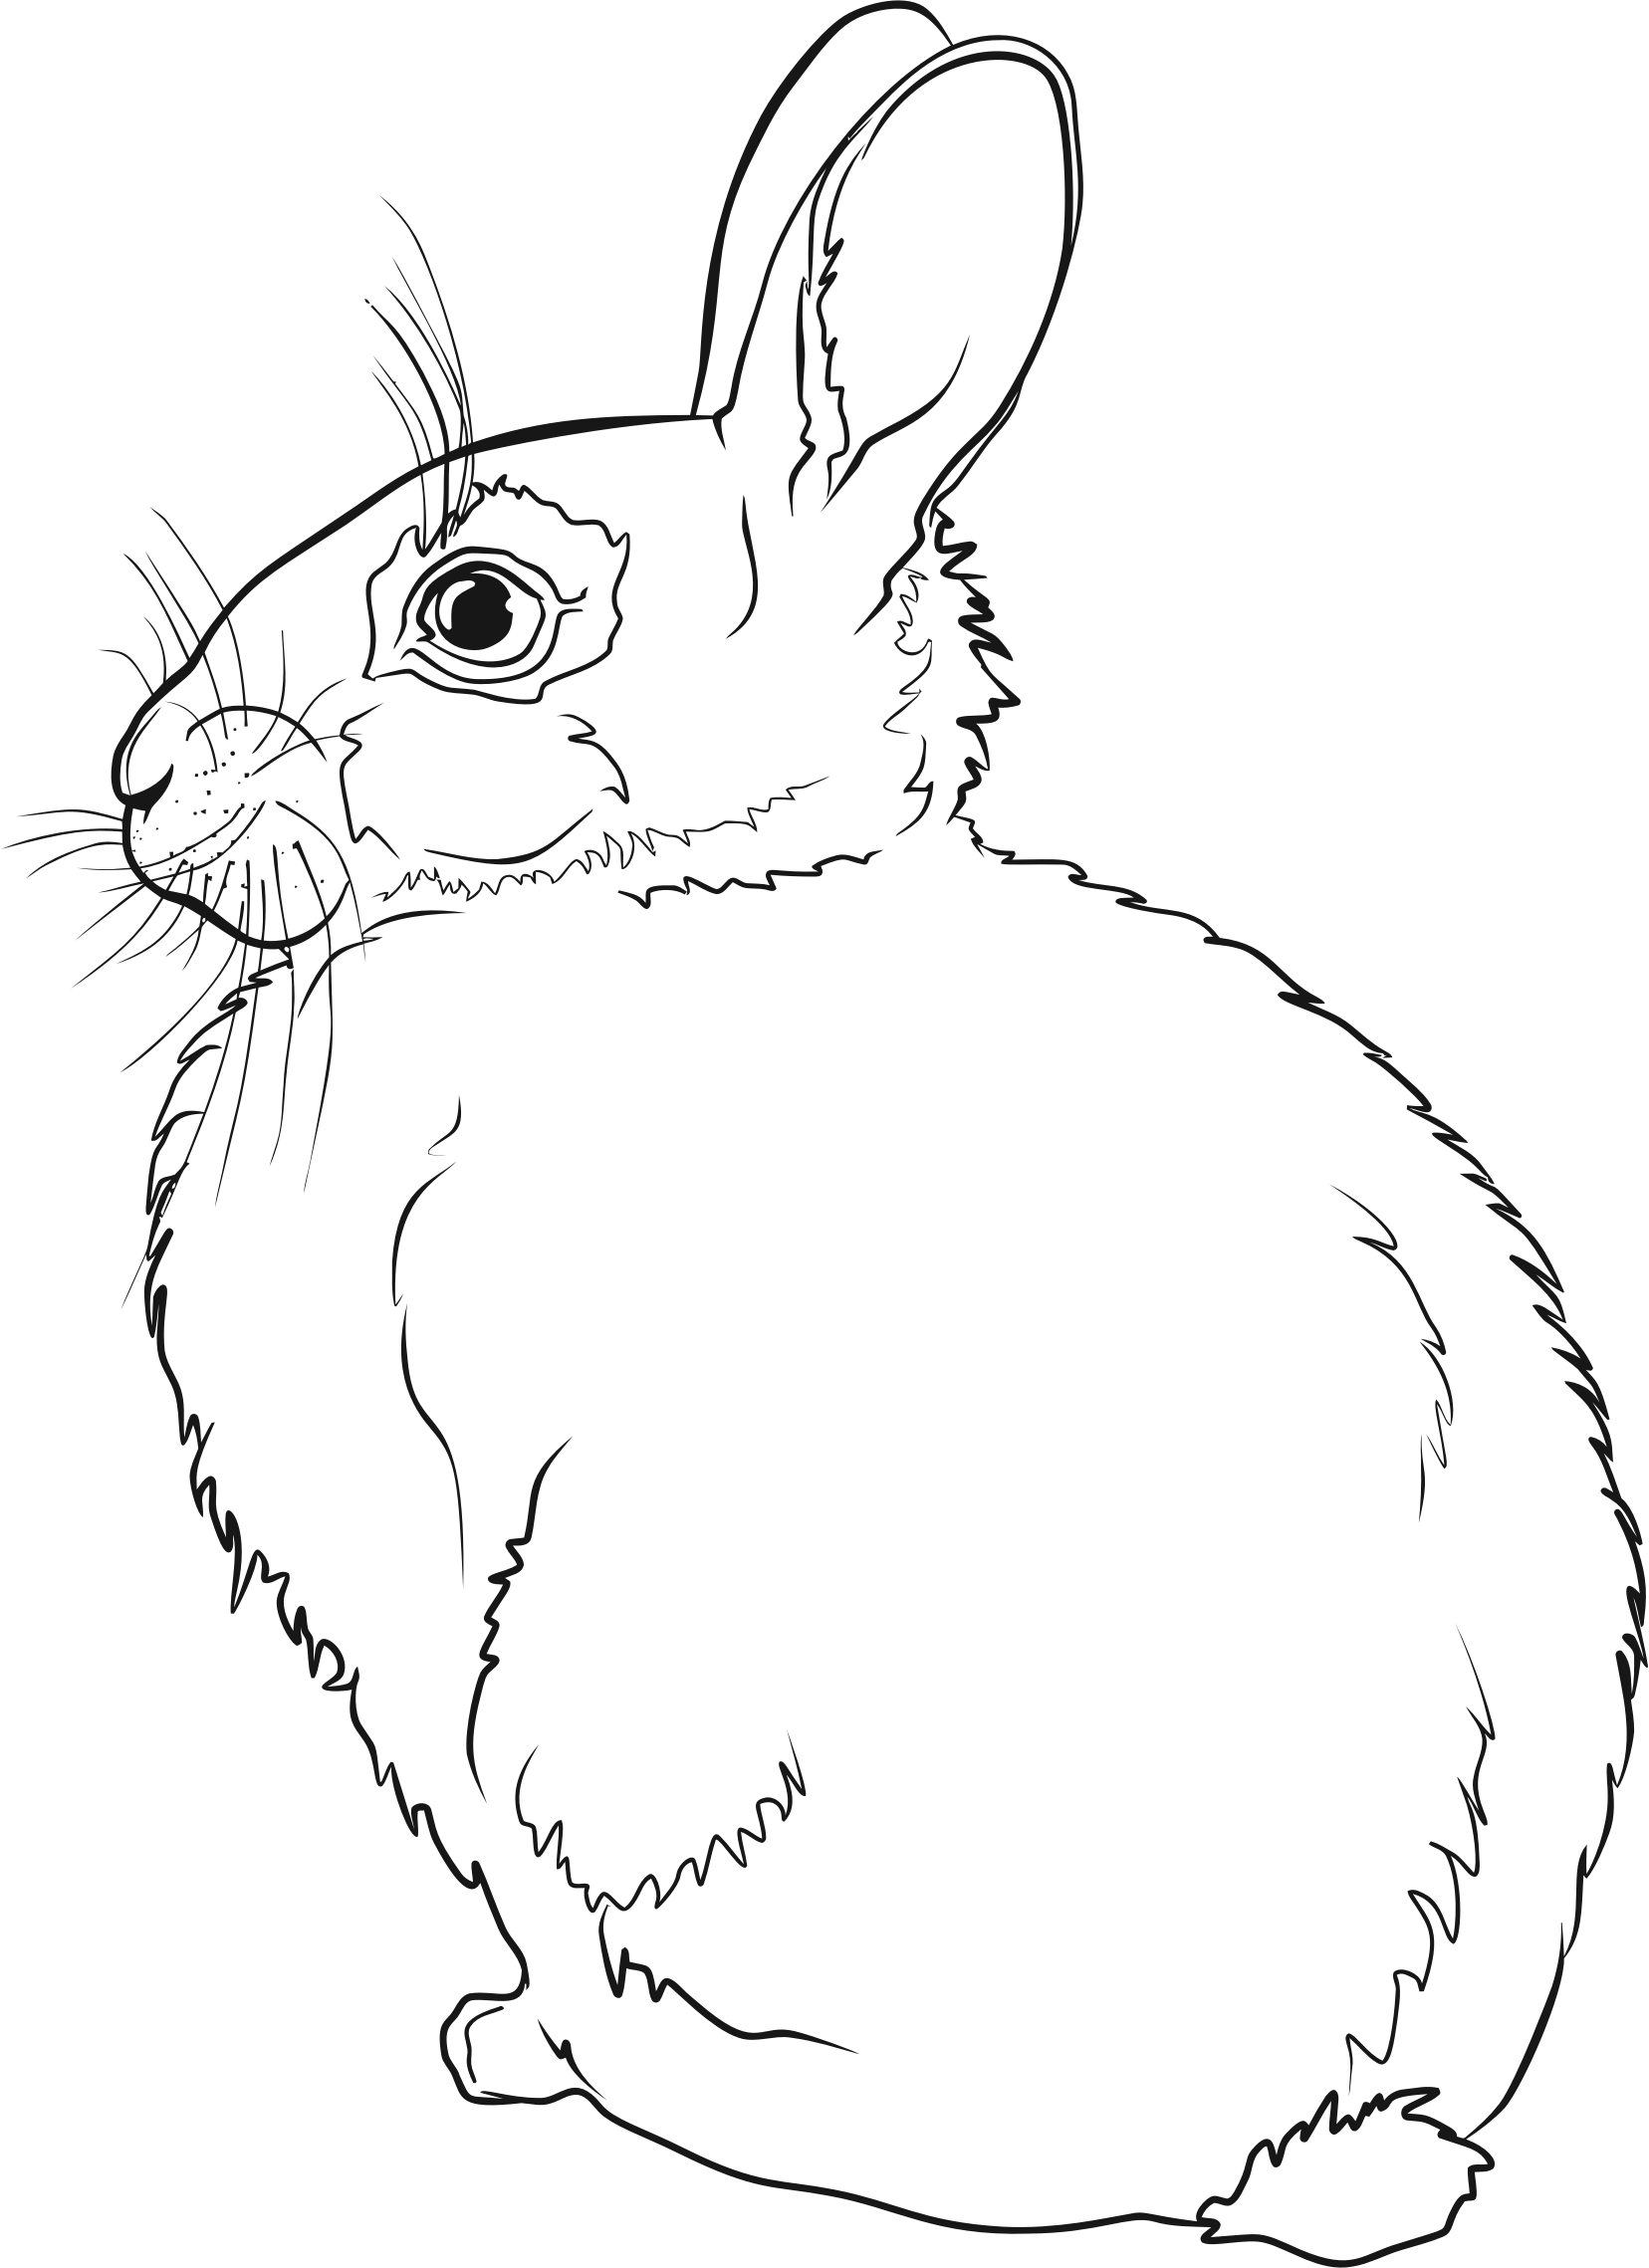 Hares drawing. Hare line at getdrawings